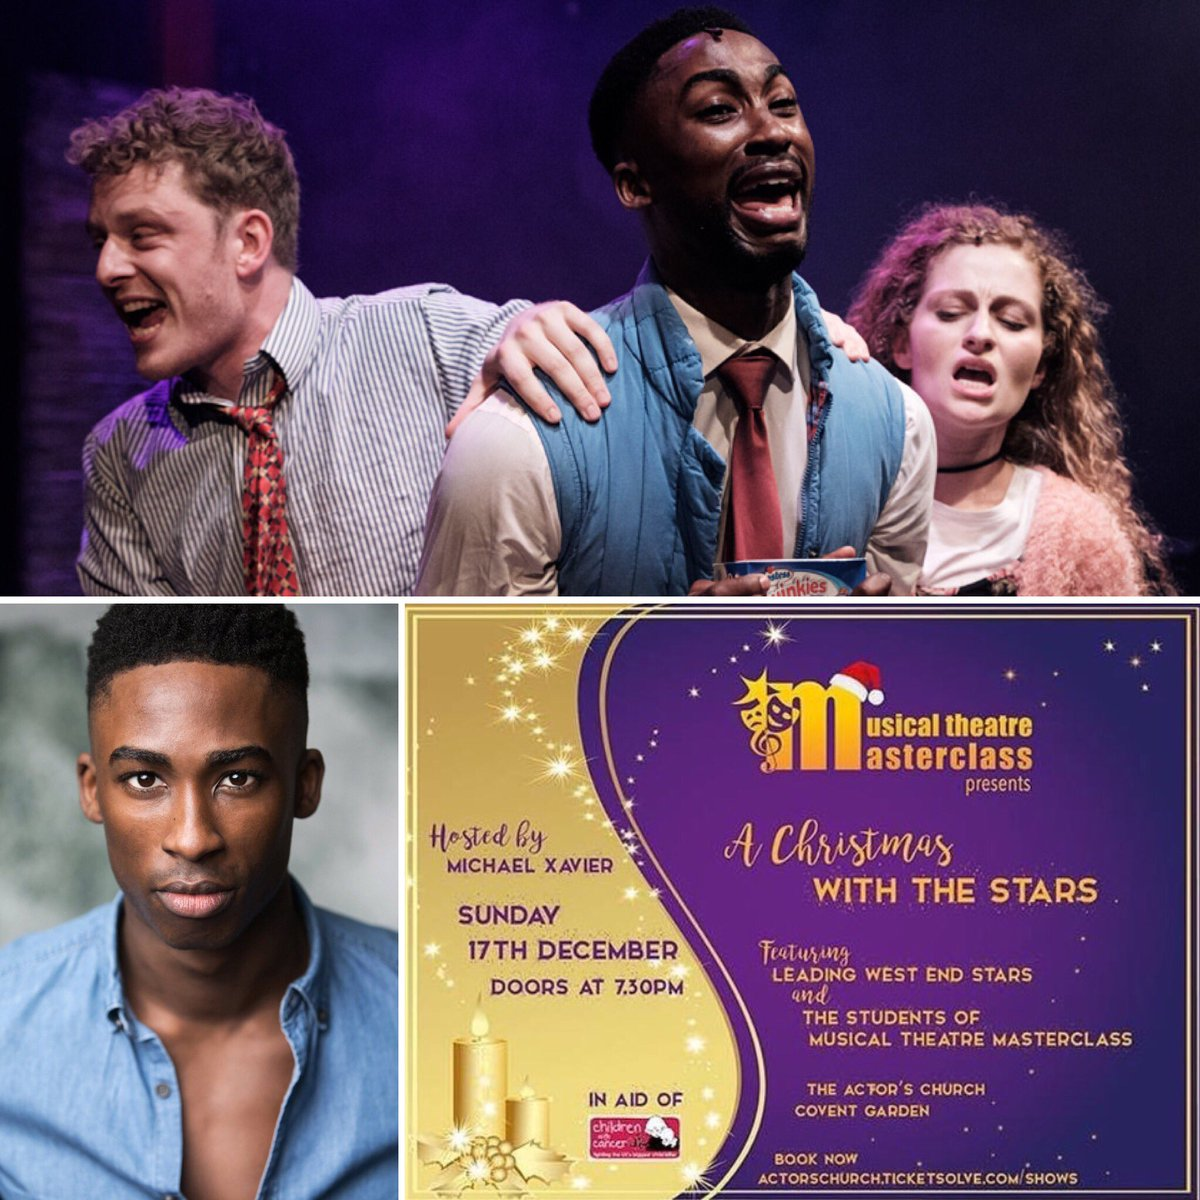 We're SO HAPPY to have yet ANOTHER fabulous actor and singer @jordanshawuk (currently in #Follies at the @NationalTheatre ) performing with our MTM students at #AChristmasWithTheStars charity concert in aid of @CwC_UK  #fundraising #charity #christmasconcert #xmasconcert<br>http://pic.twitter.com/0ZG3DgQu5E